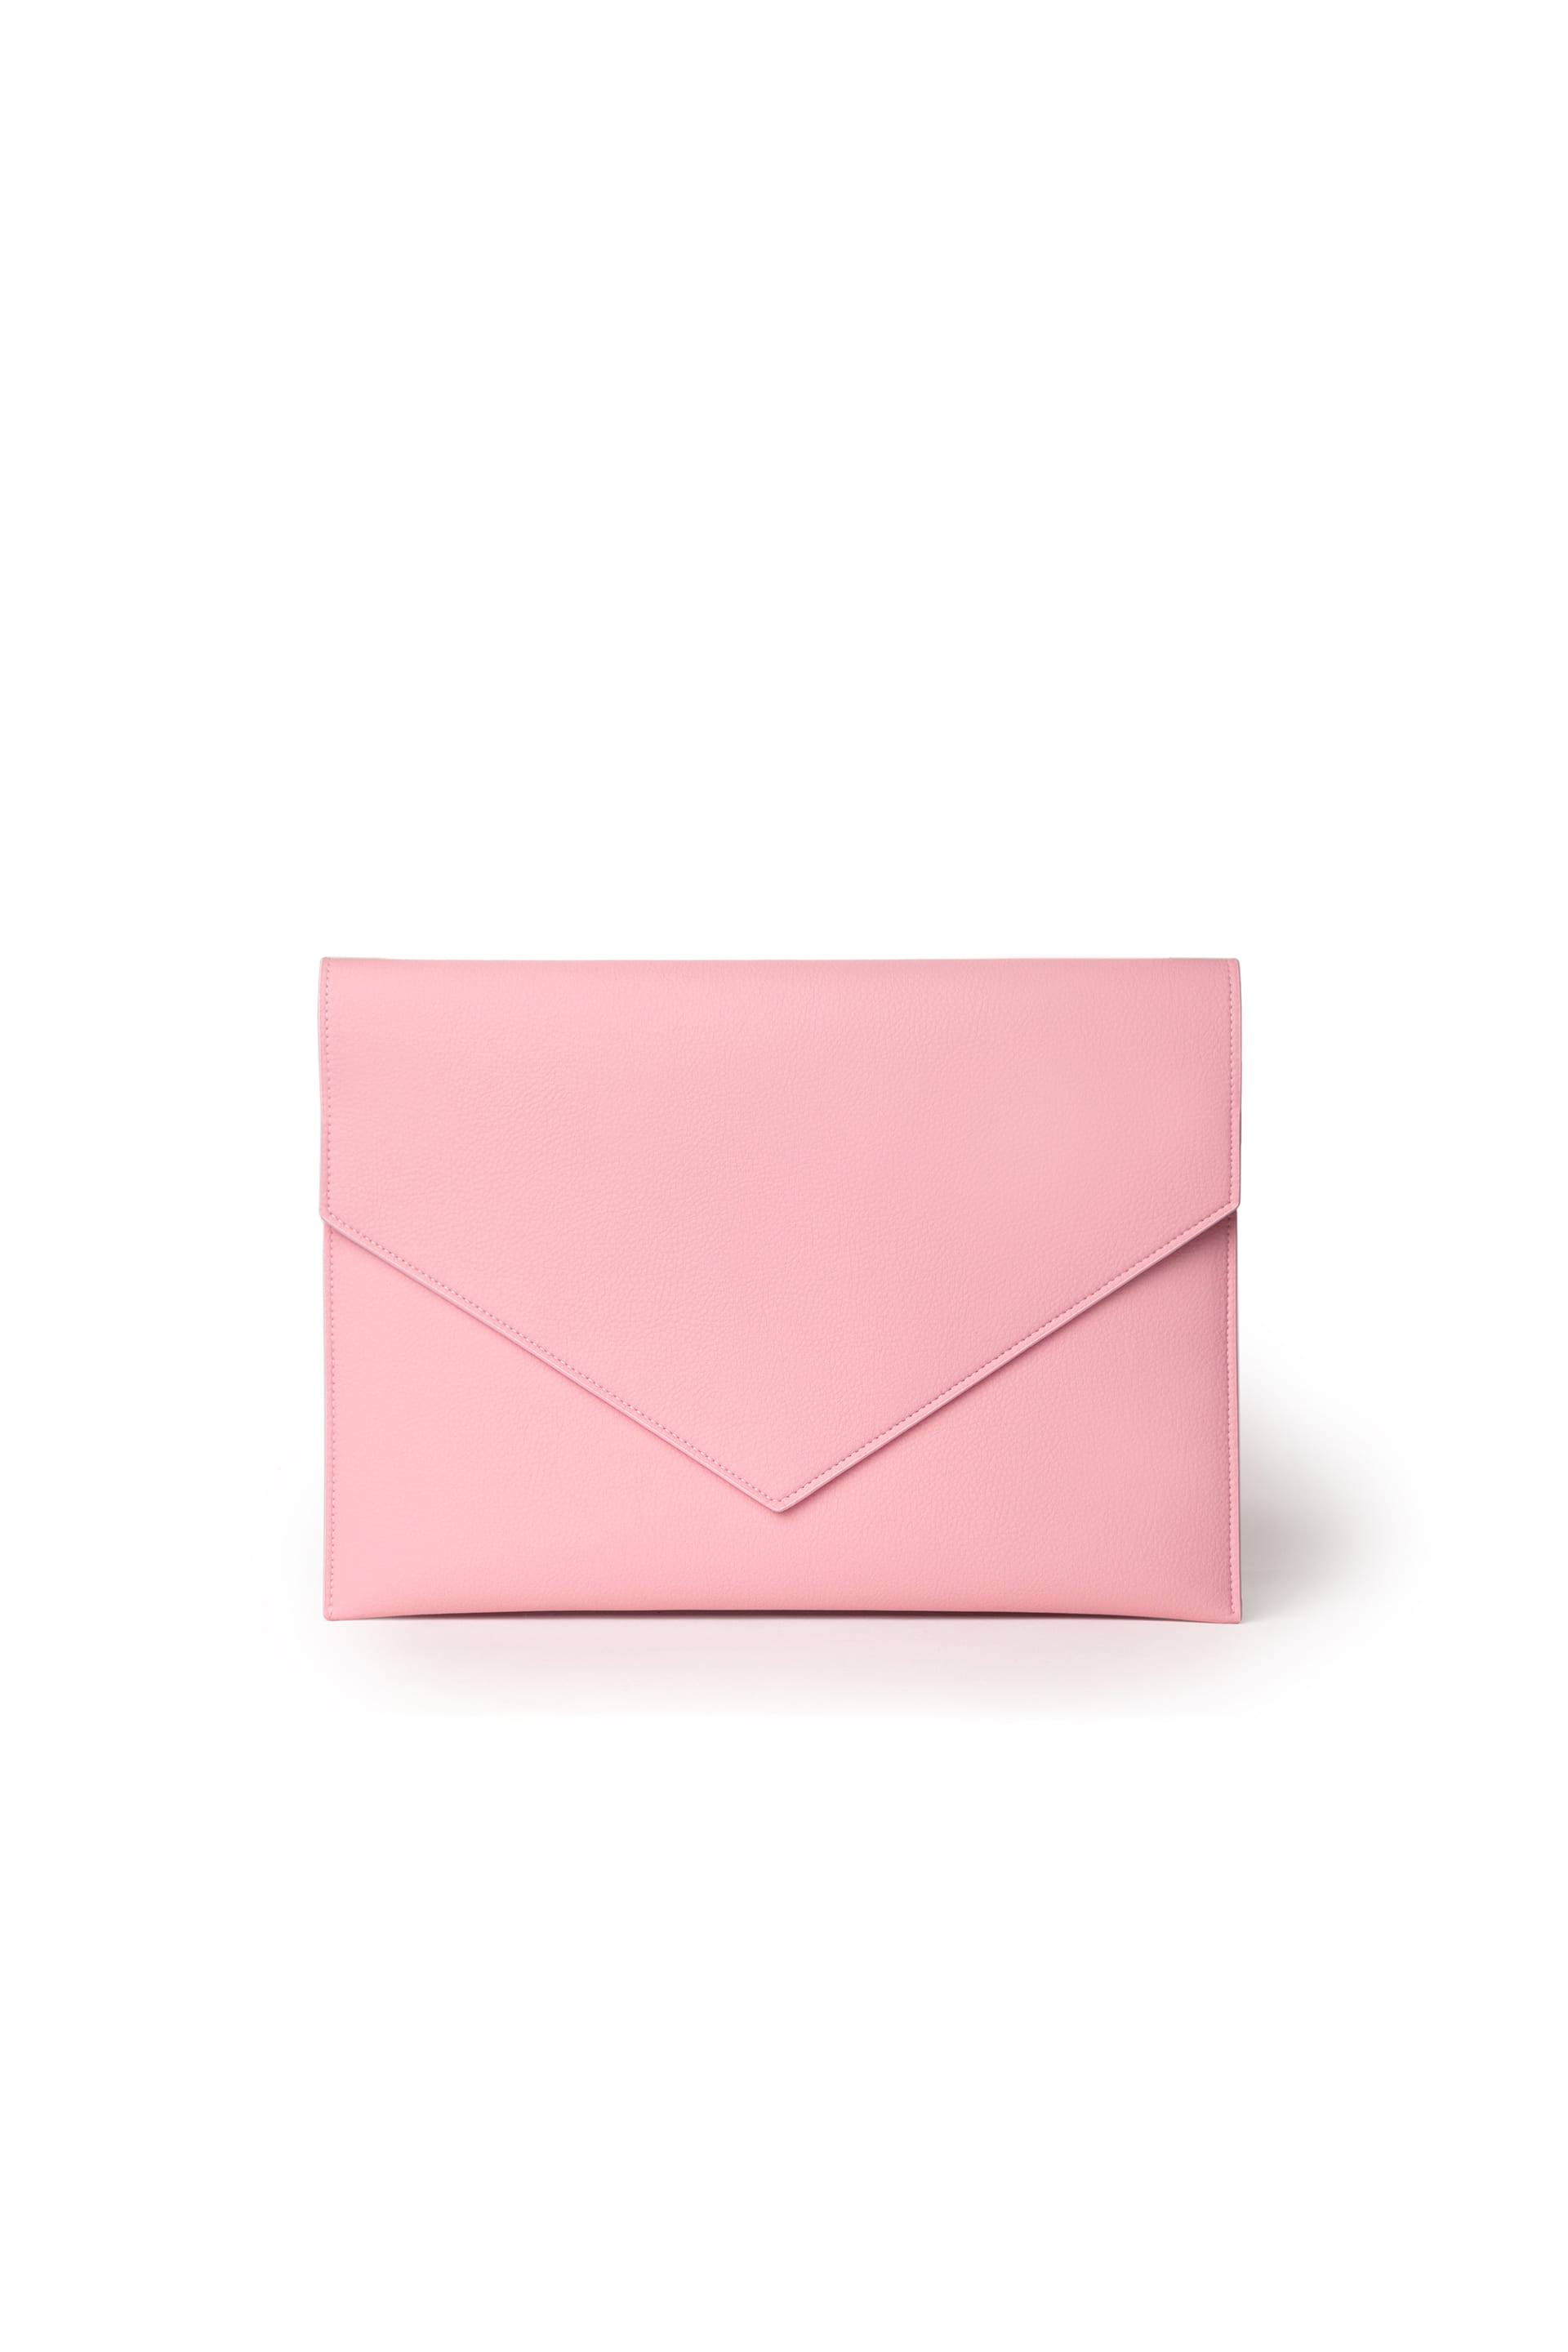 DAY CLUTCH 04 Romantic Pink